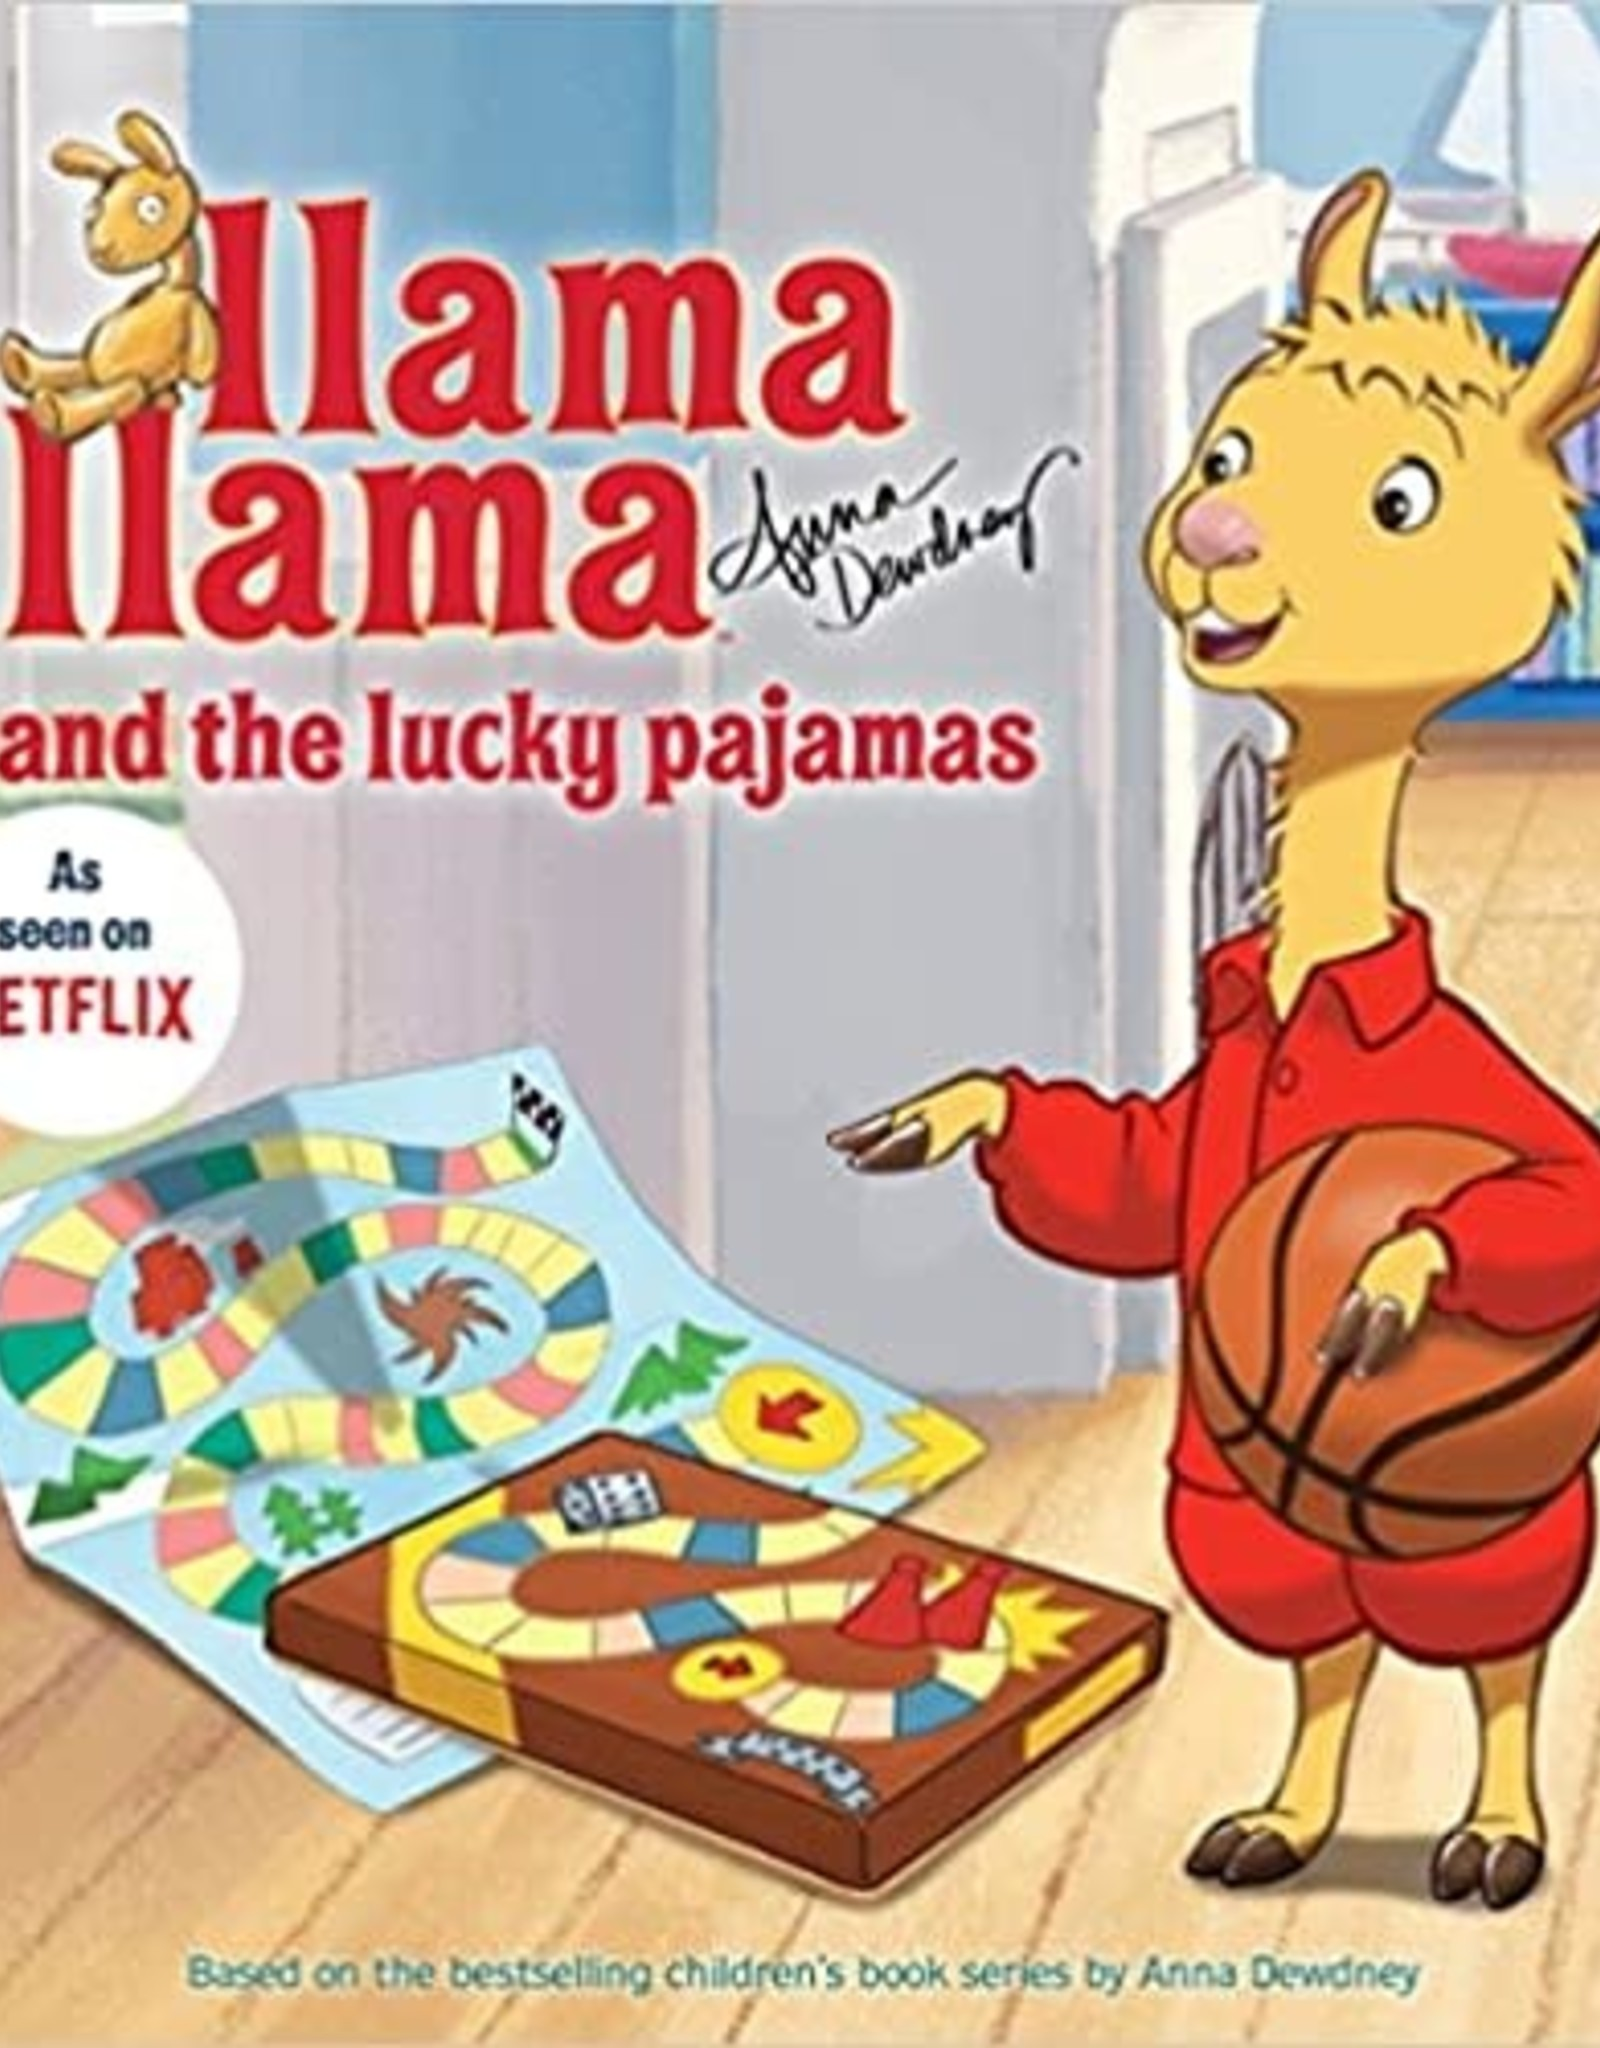 Penguin Random House Llama Llama and the Lucky Pajamas